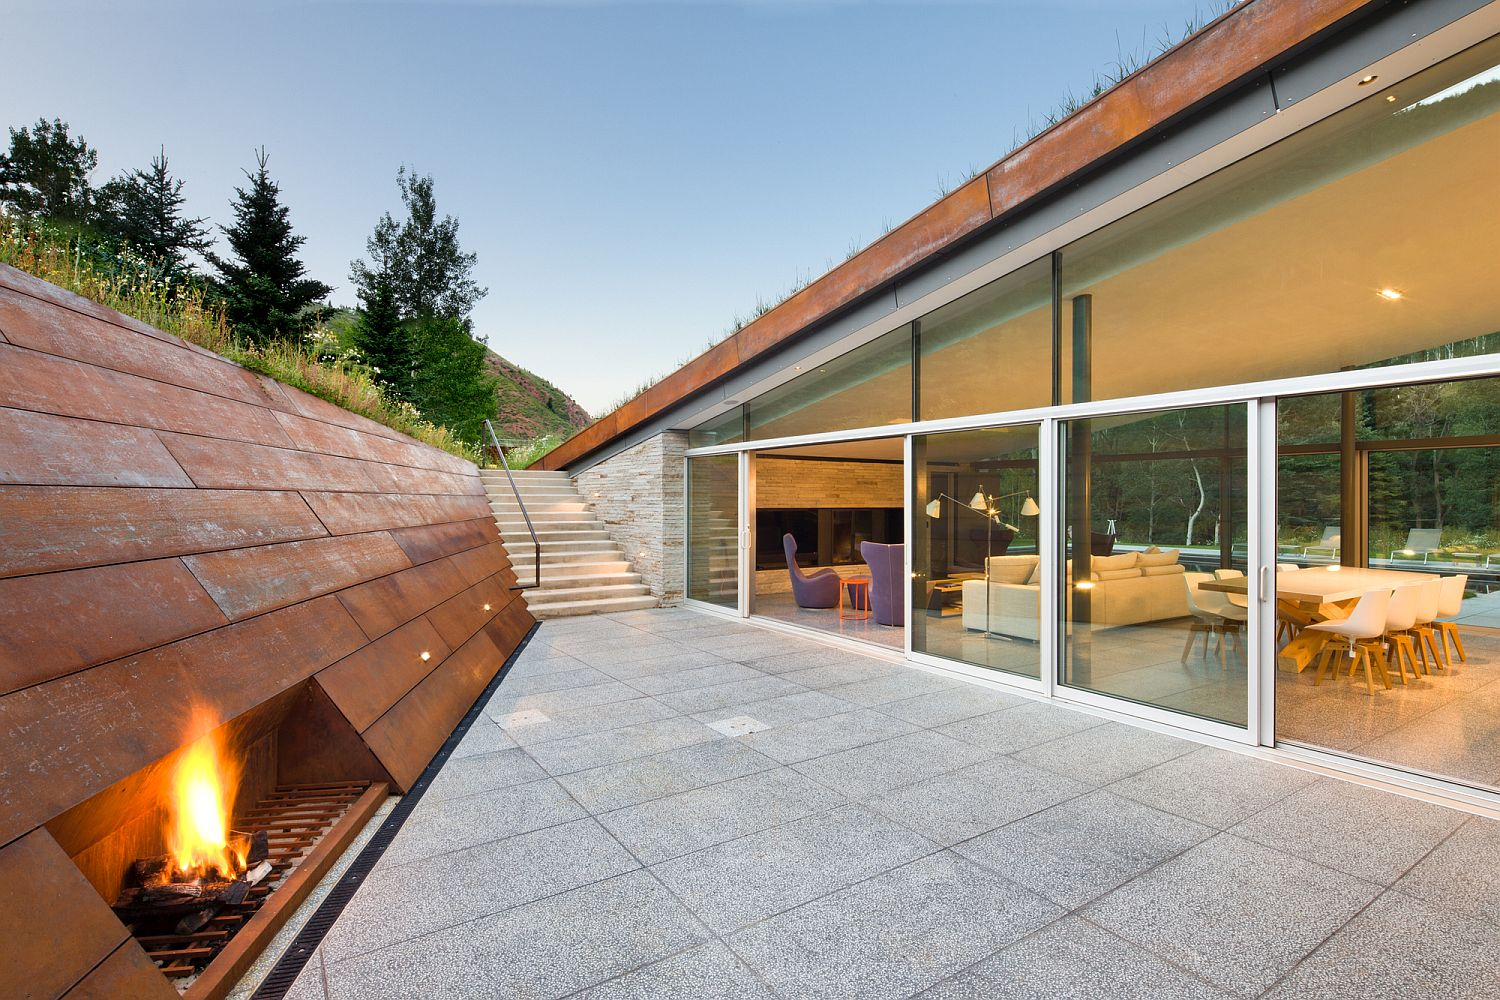 Corten clad wall for the sunken lounge inside the mountain home with green roof